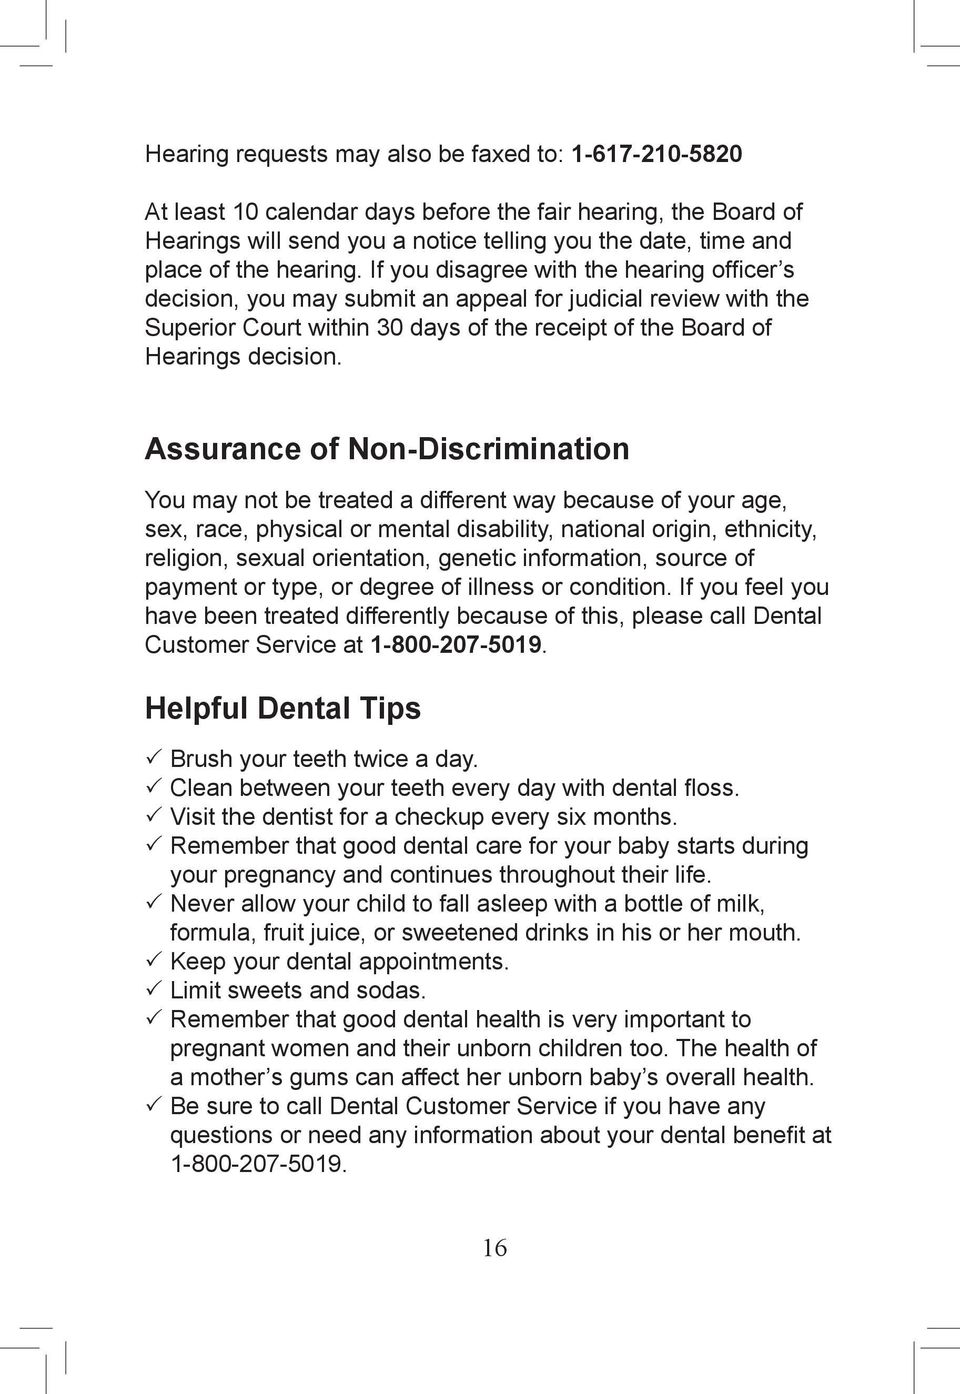 Assurance of Non-Discrimination You may not be treated a different way because of your age, sex, race, physical or mental disability, national origin, ethnicity, religion, sexual orientation, genetic